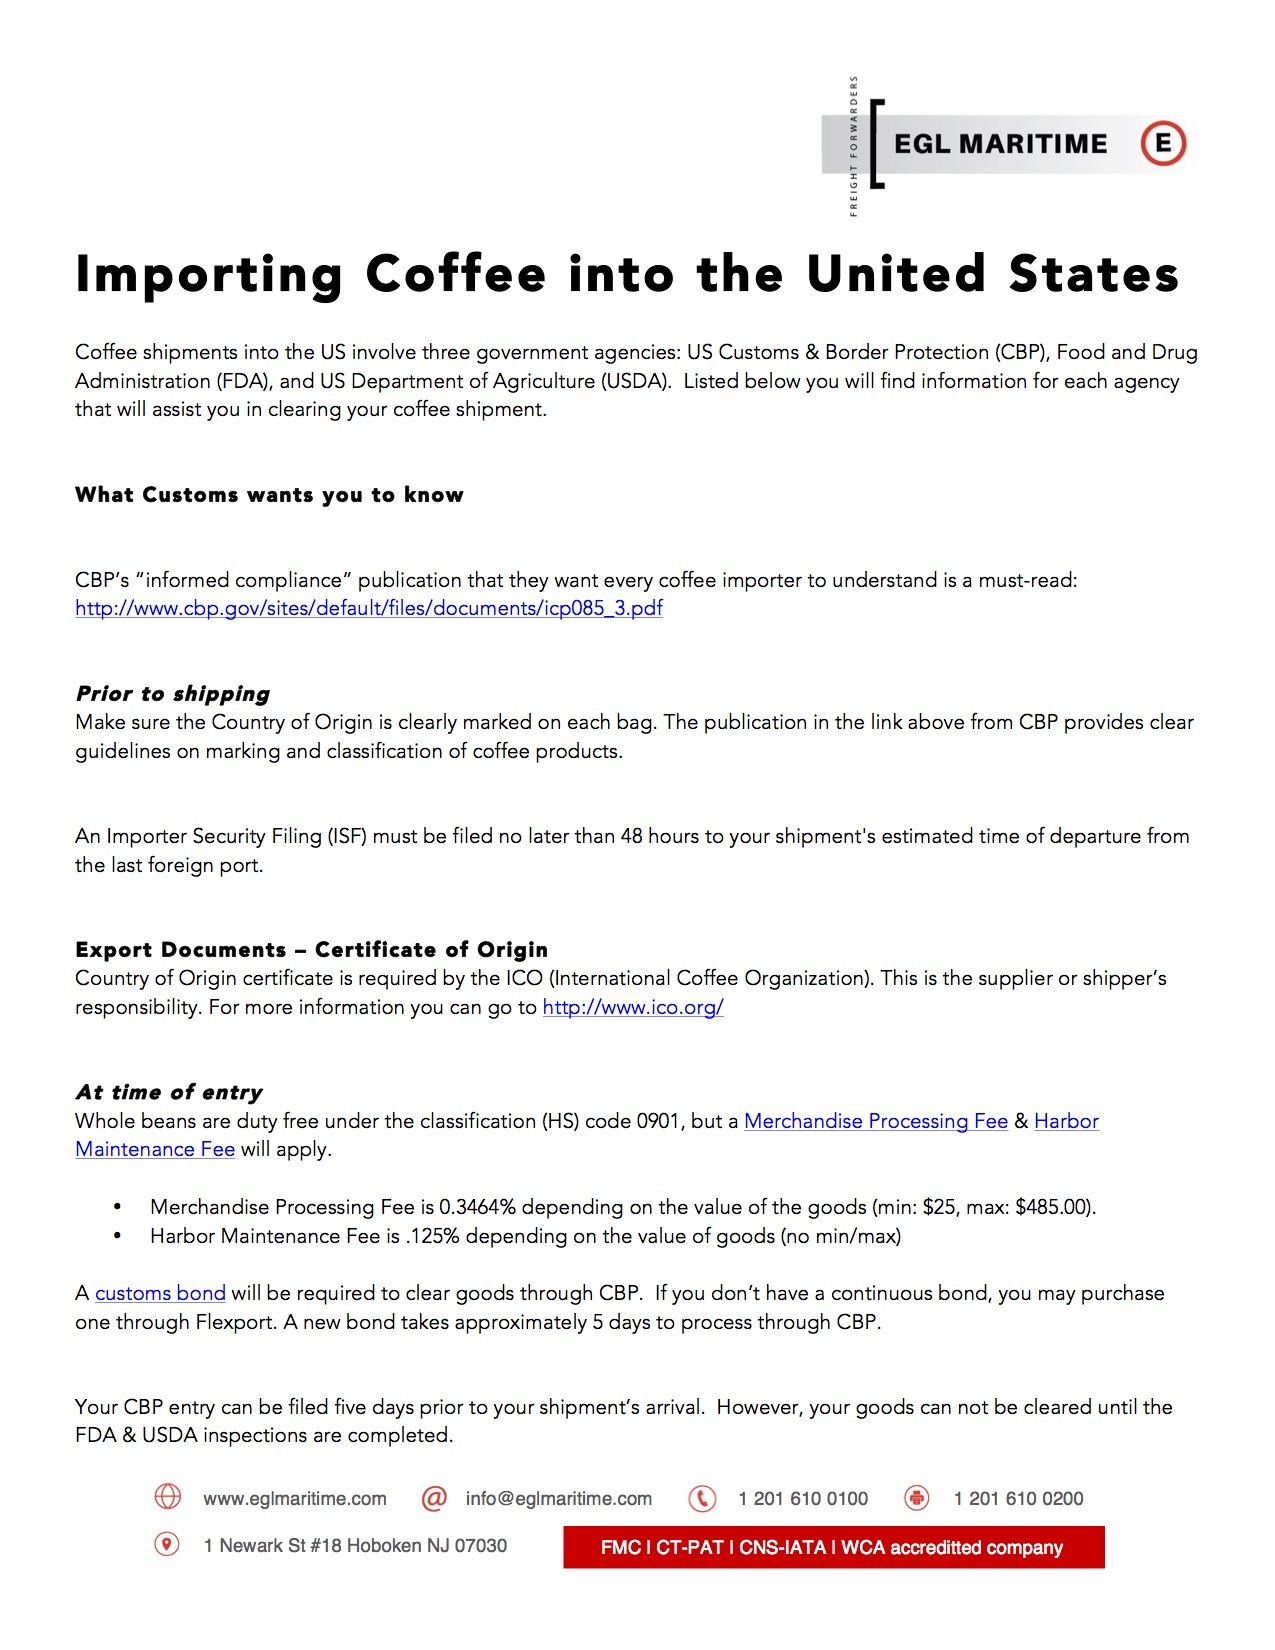 Coffee Import Guidelines - Our Blog - EGL Maritime